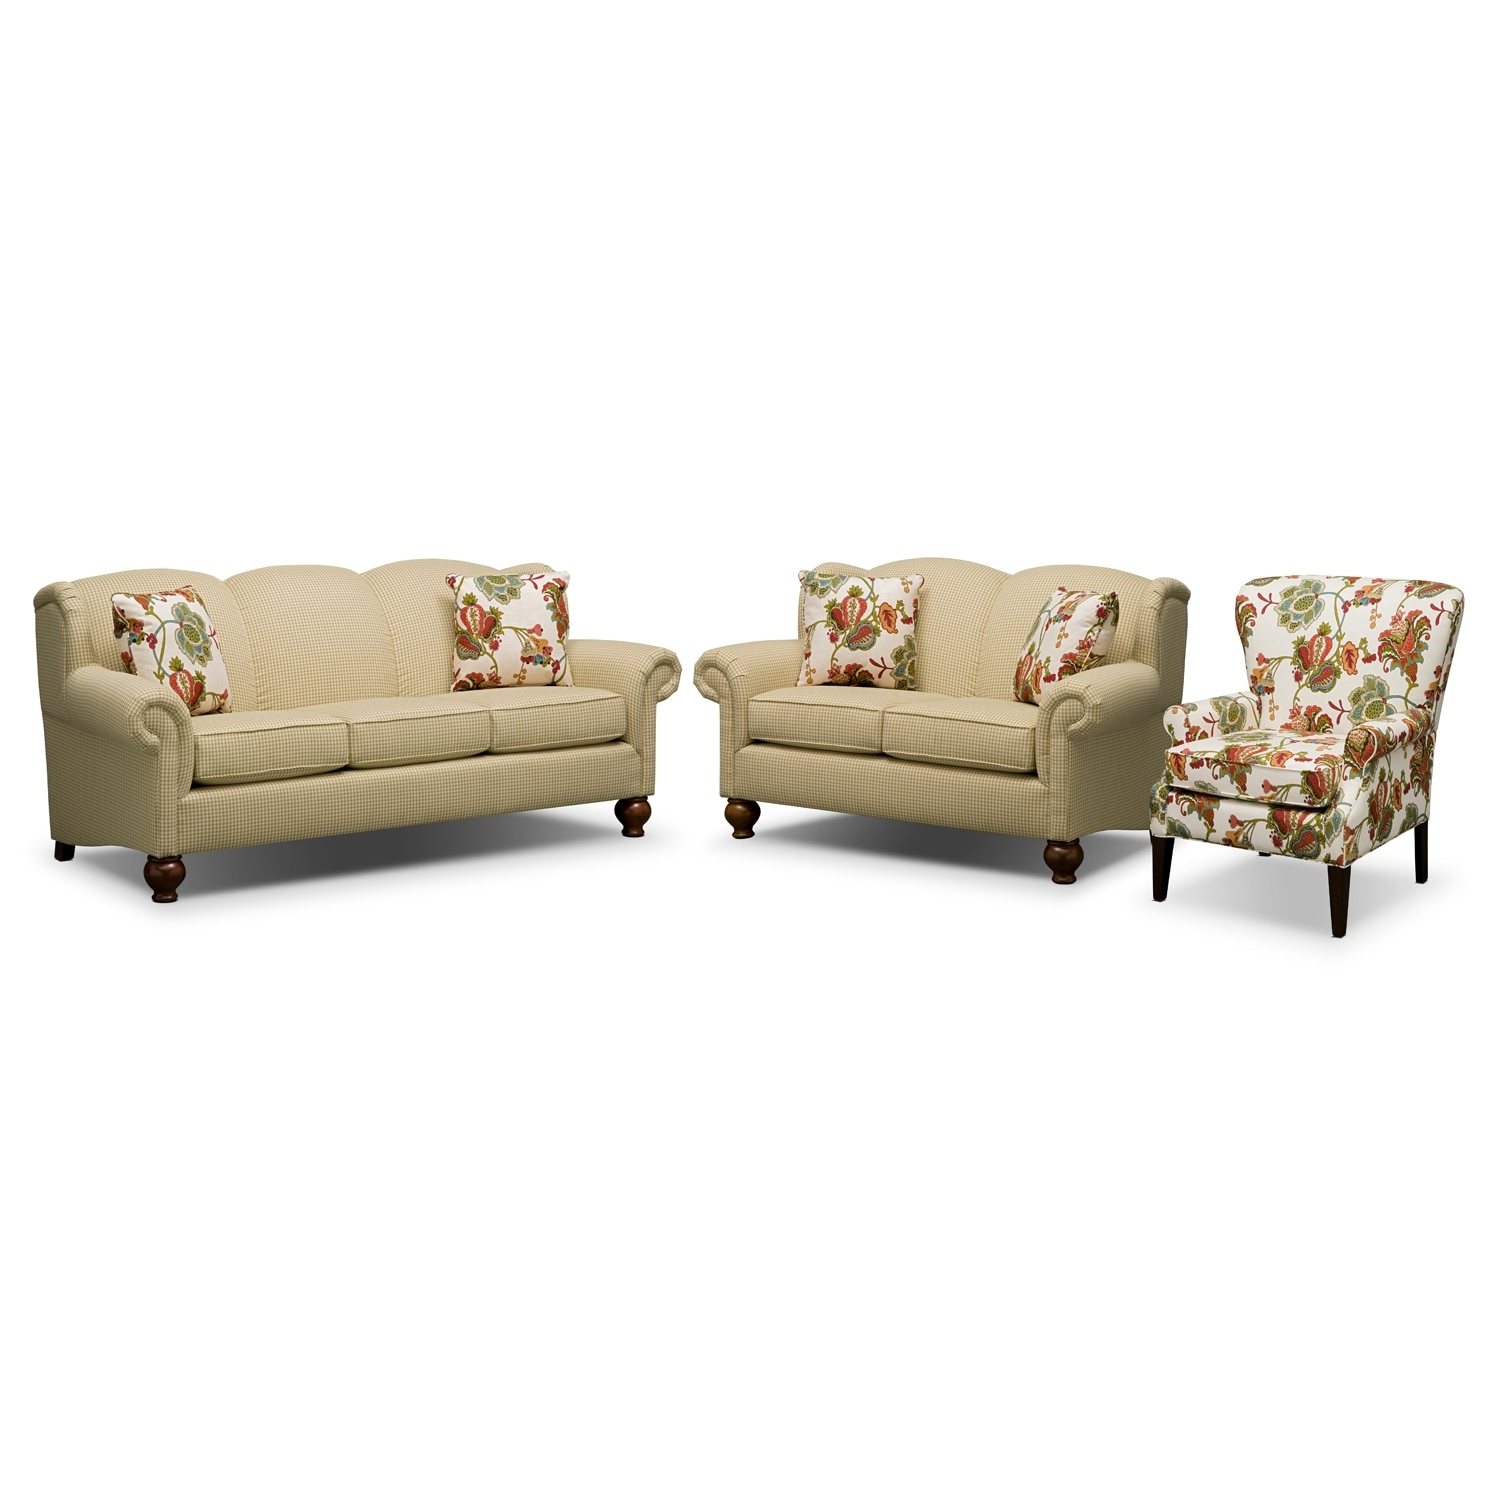 Living Room Furniture - Charlotte II 3 Pc. Living Room w/ Accent Chair